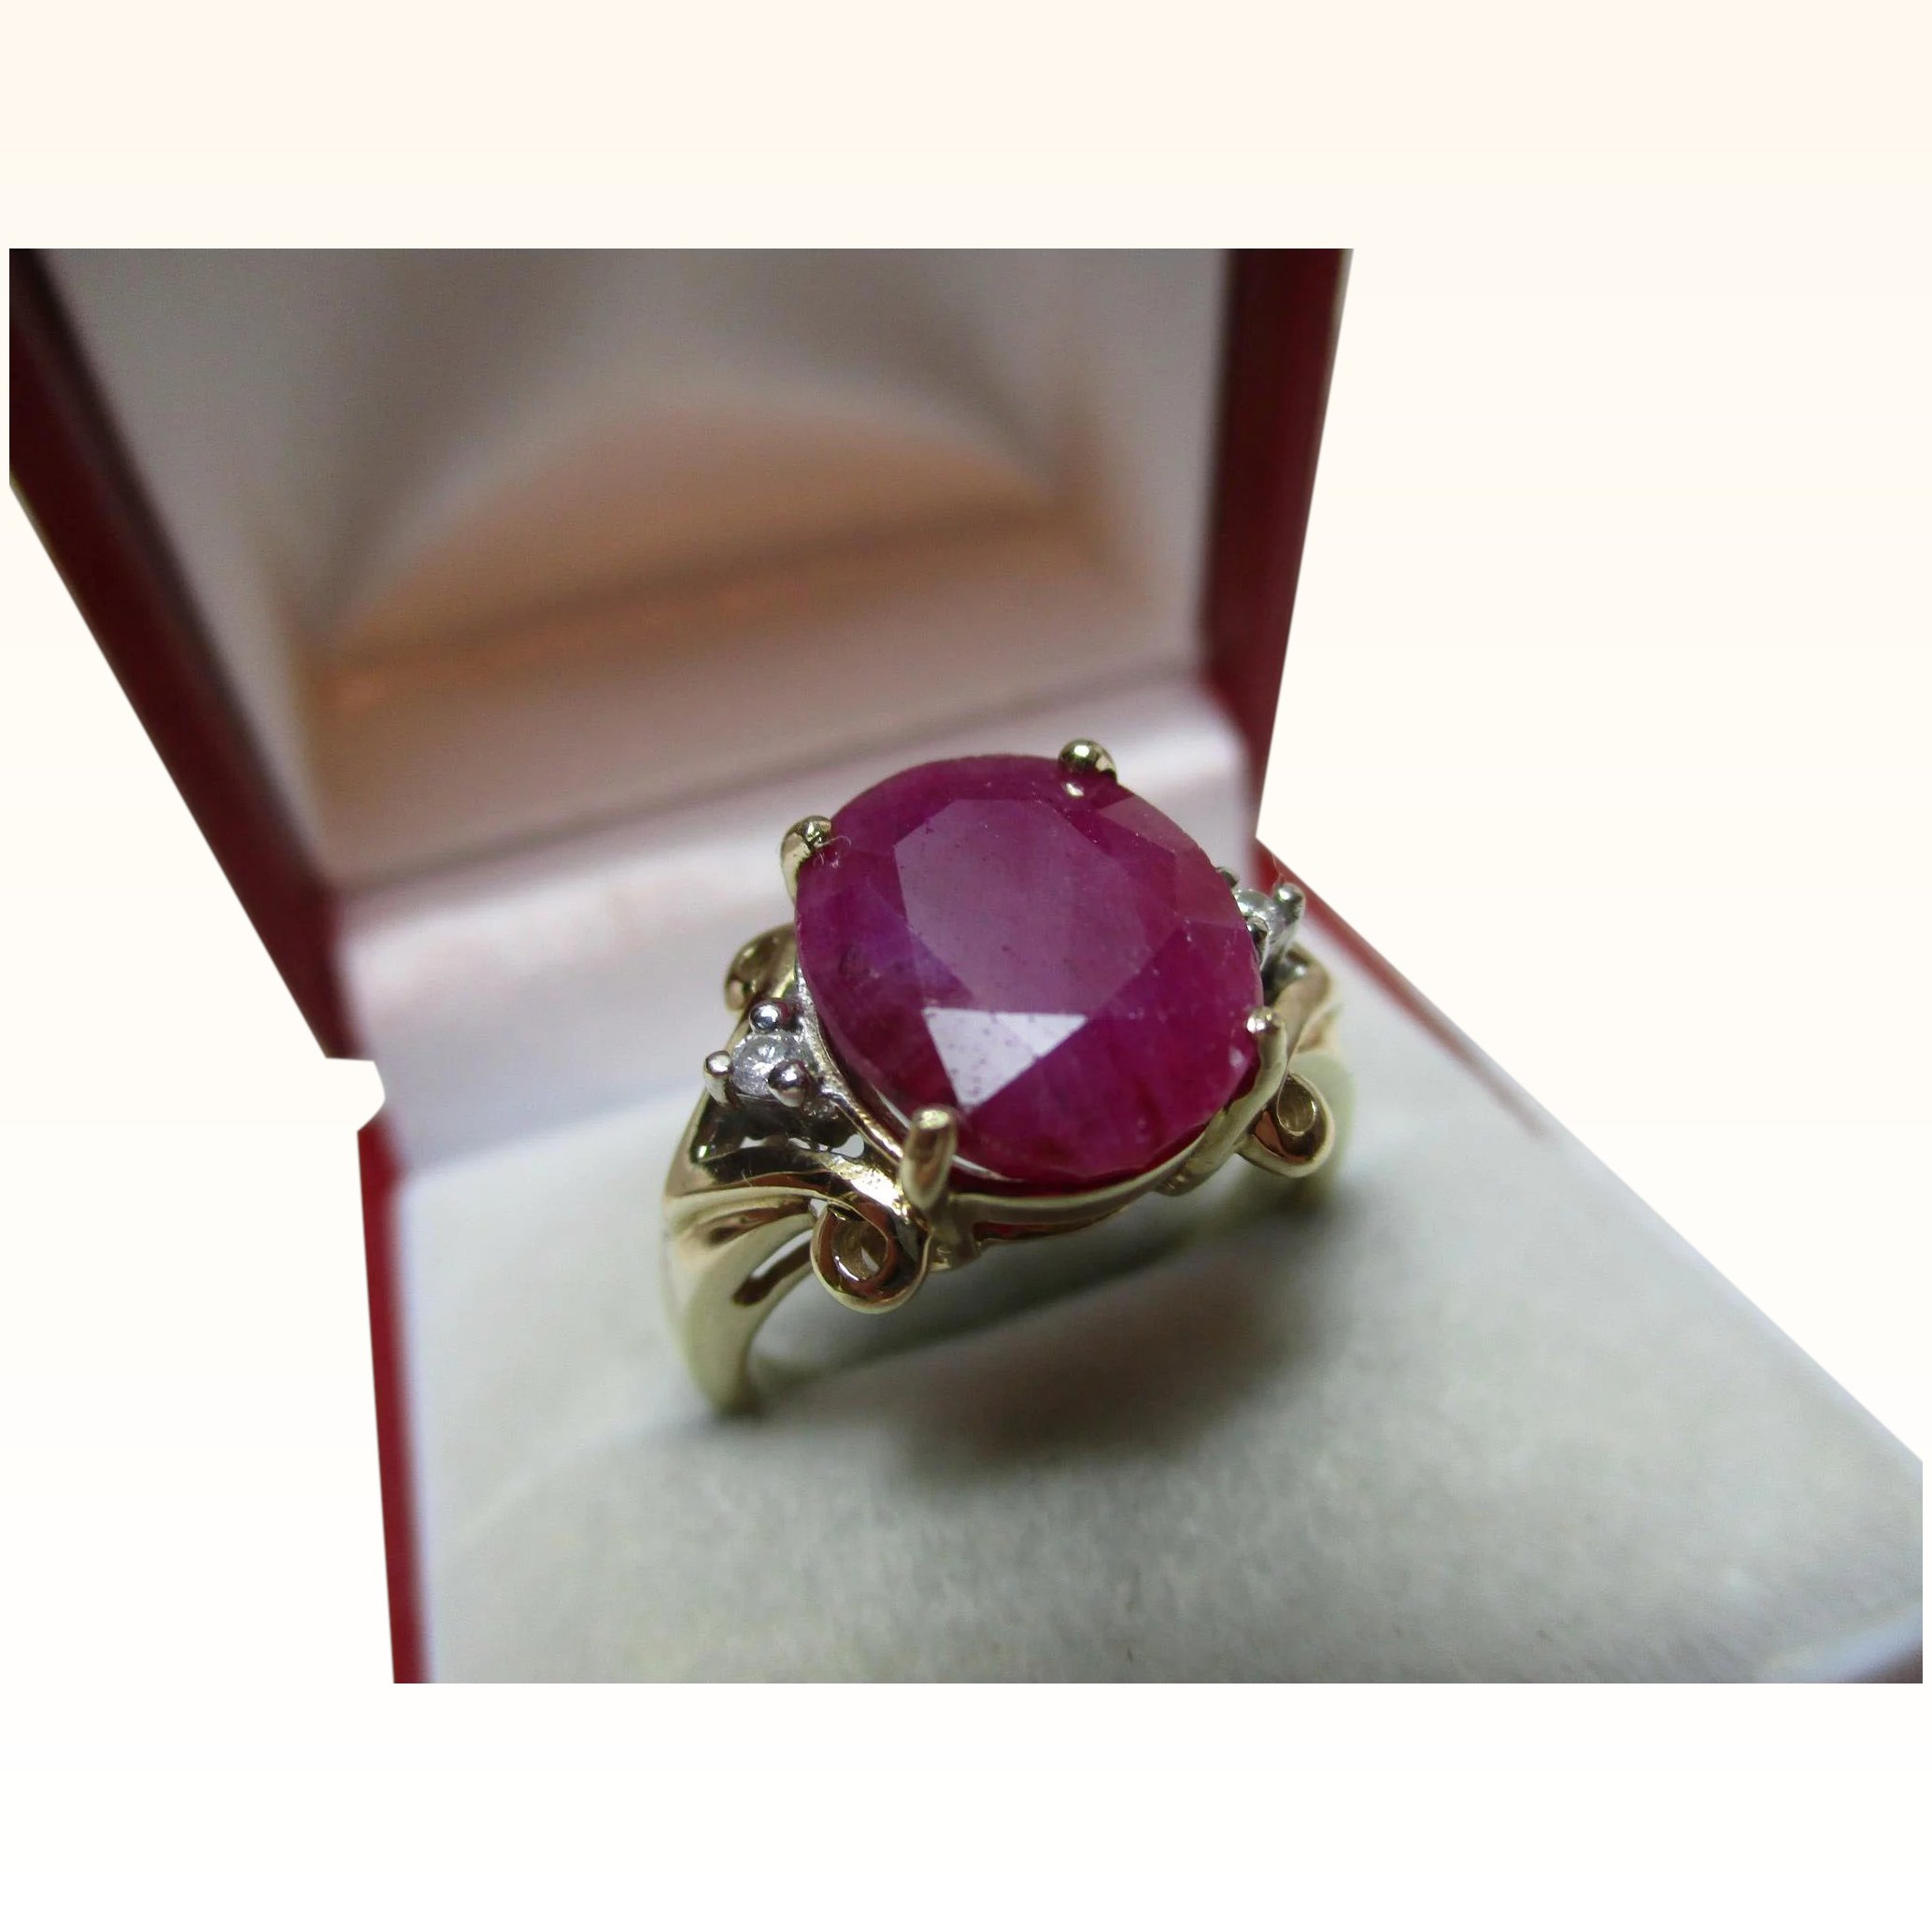 gemstones ruby gi properties spiritual gemstone healing of crystals and rubies